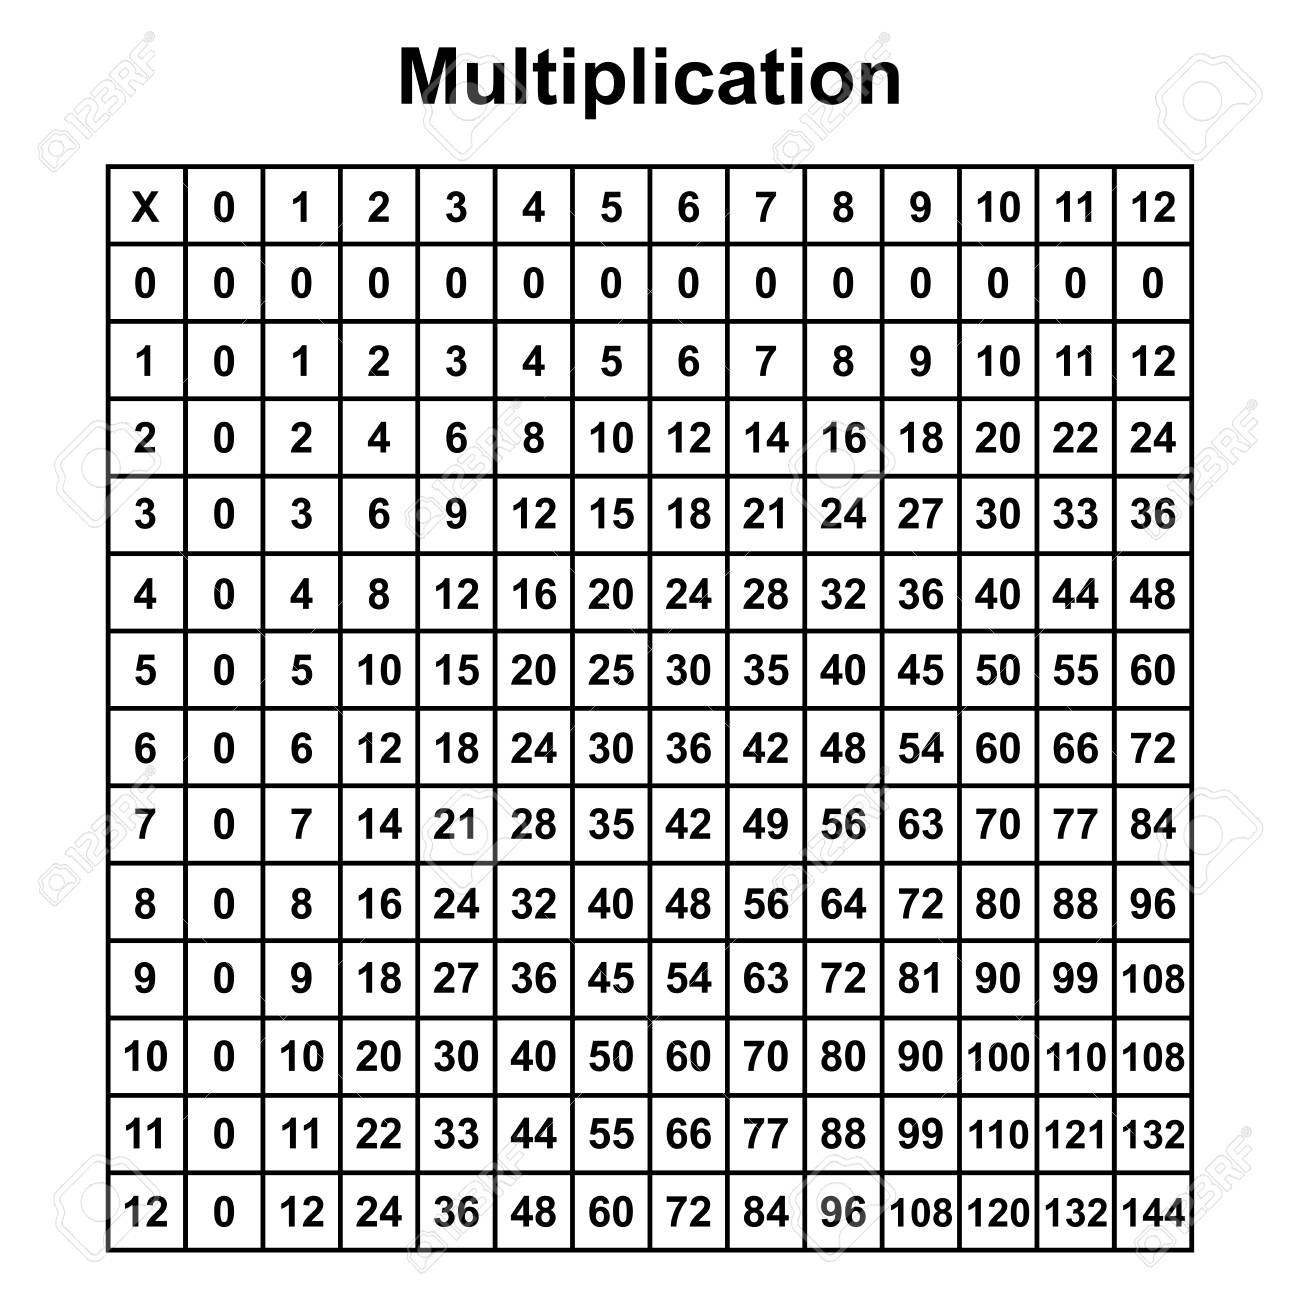 Multiplication Table Chart Or Multiplication Table Printable.. pertaining to Printable Multiplication Chart 30X30